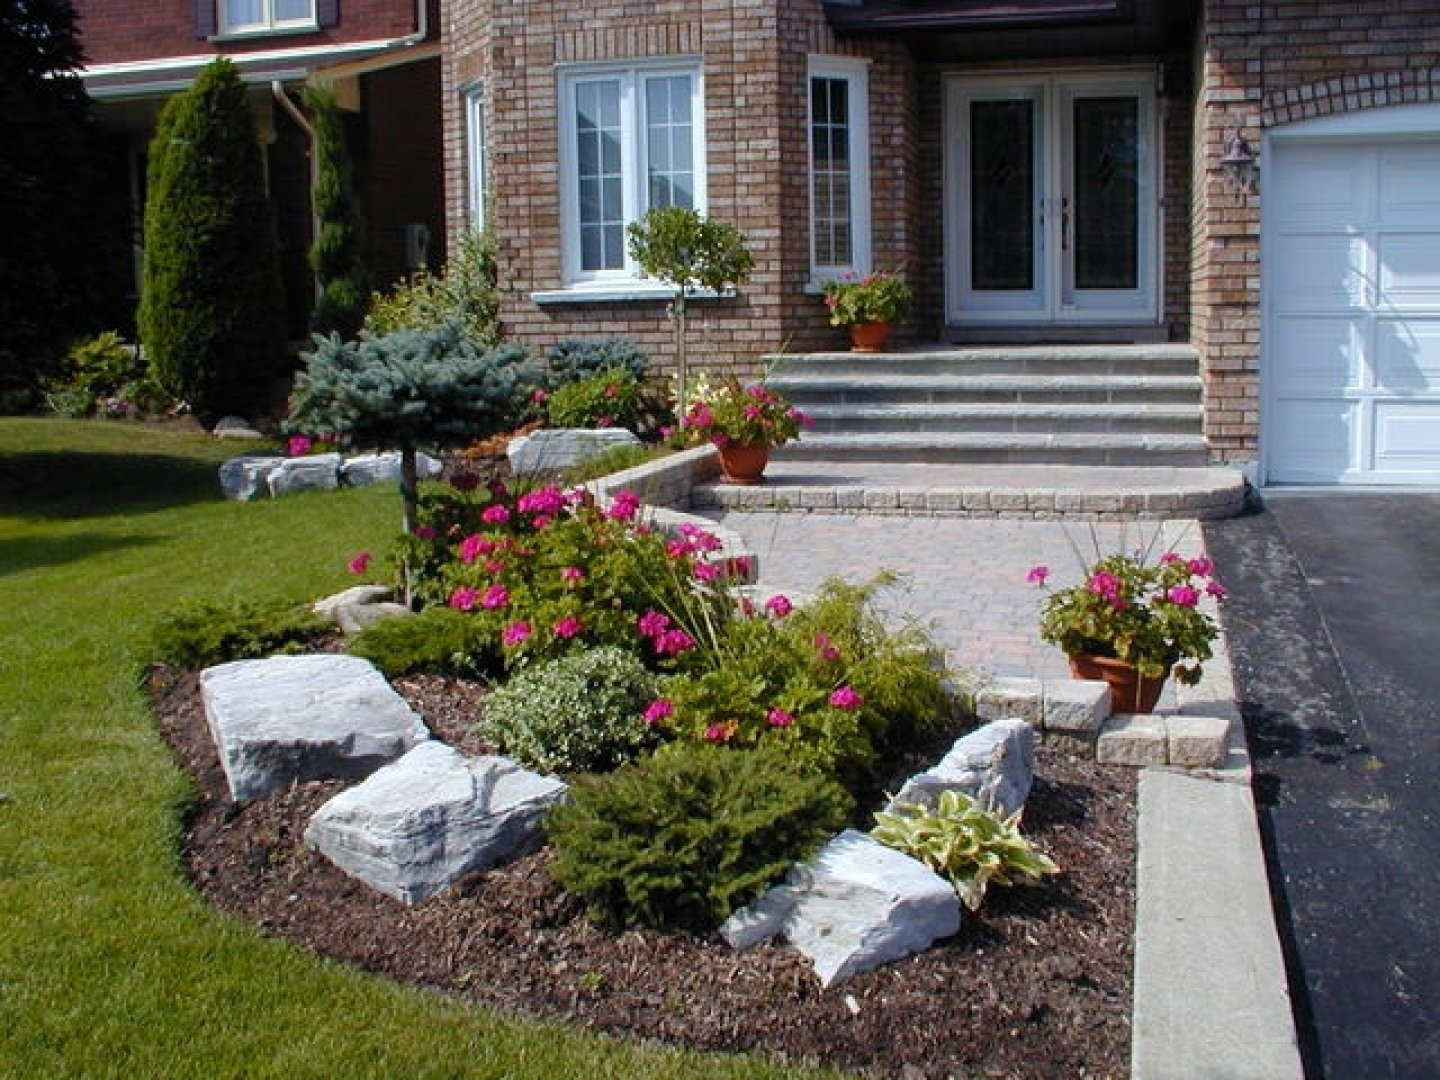 10 Lovely Landscaping Ideas For Front Yards garden design lastest samples ideas small front yard landscaping 1 2021